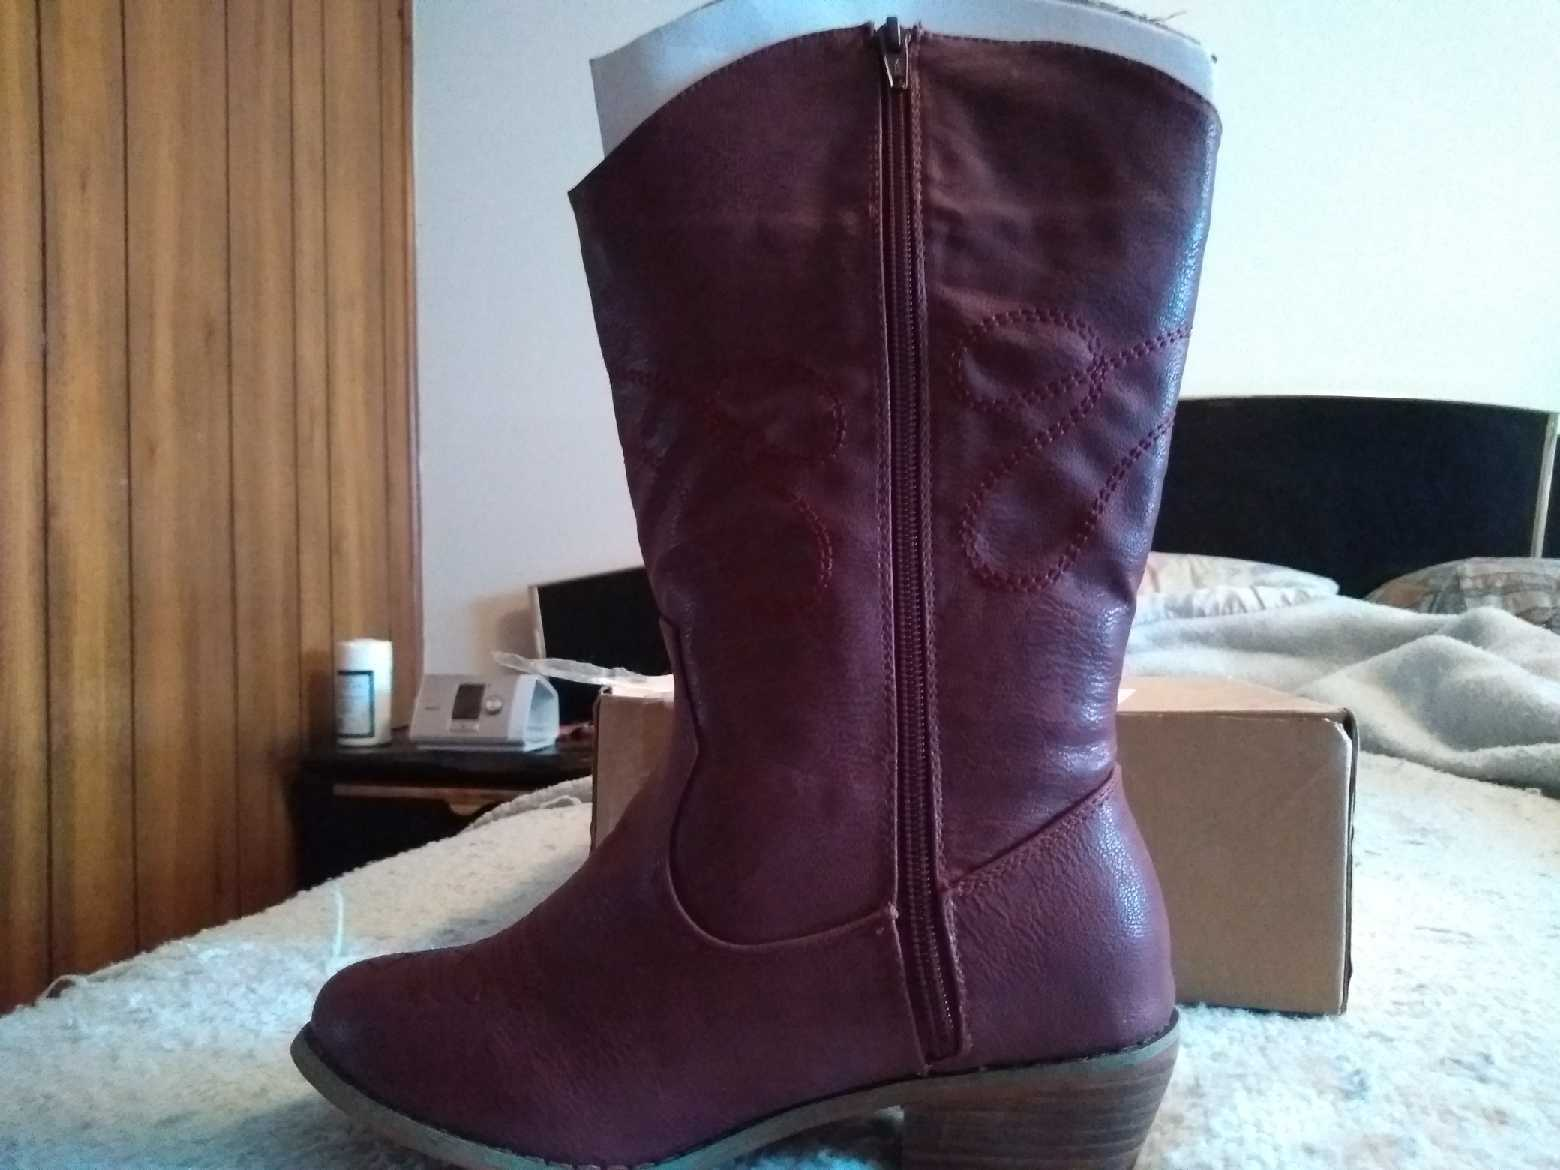 Comfort View Woman Within Size 7 Wide Calf Solid Burgundy Boots New